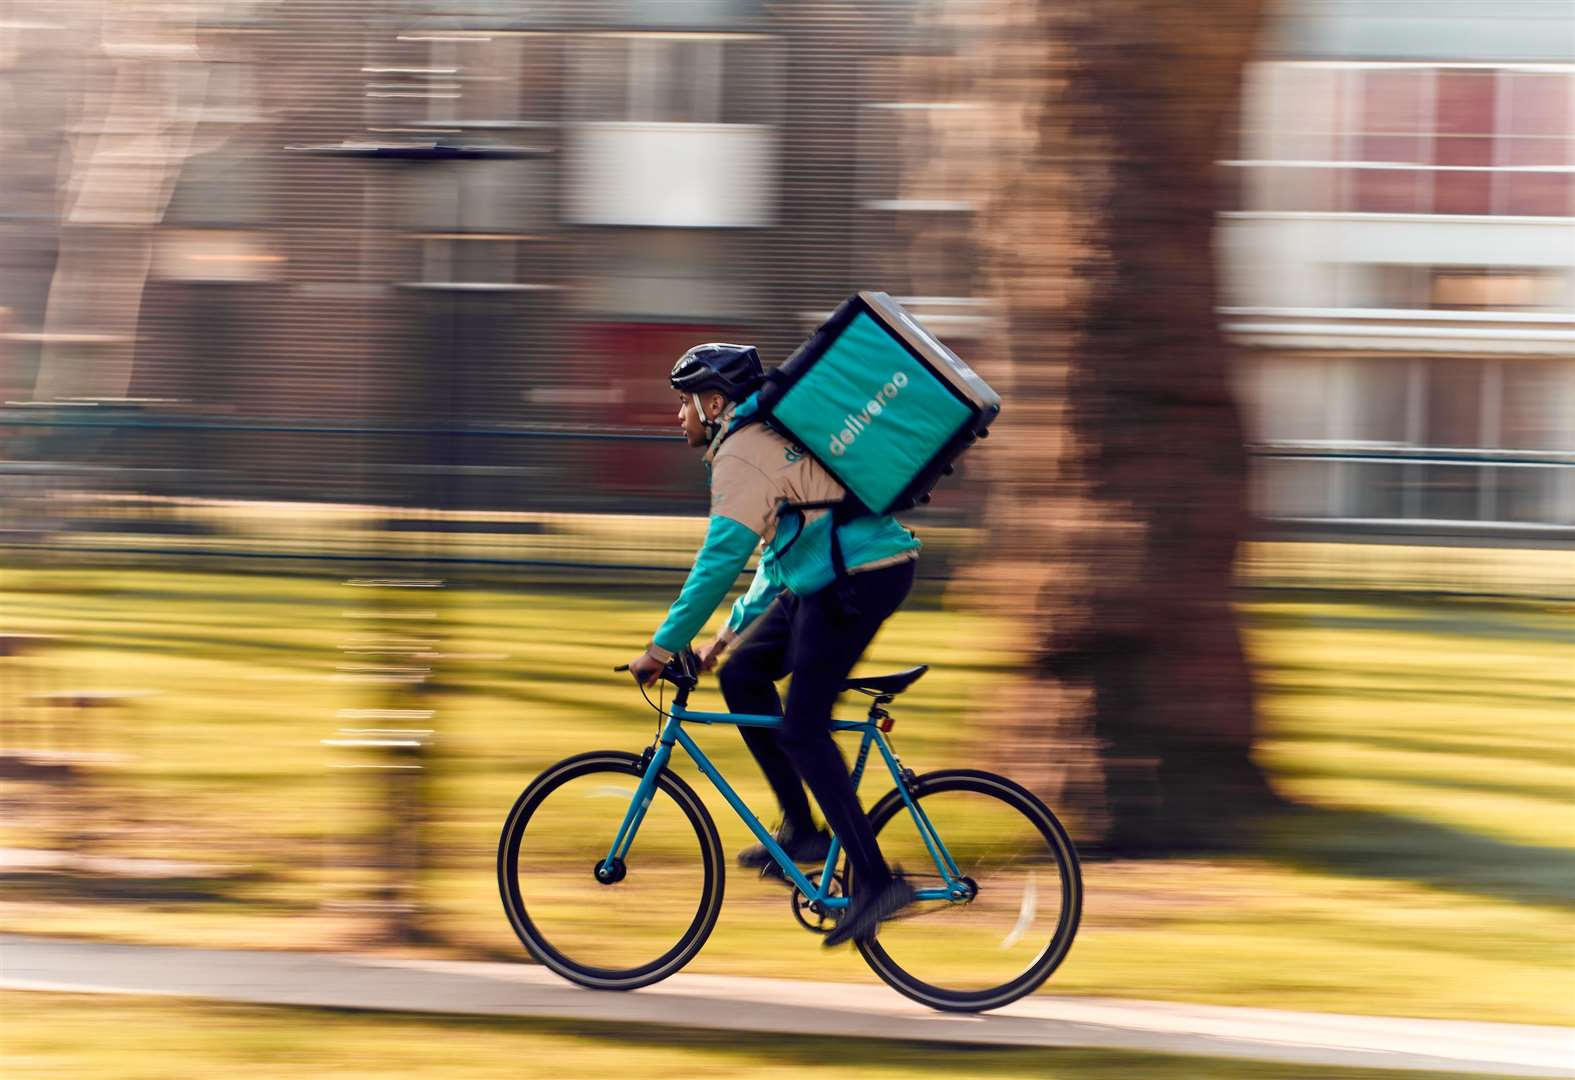 Deliveroo to launch rival service to Just Eat in Bishop's Stortford